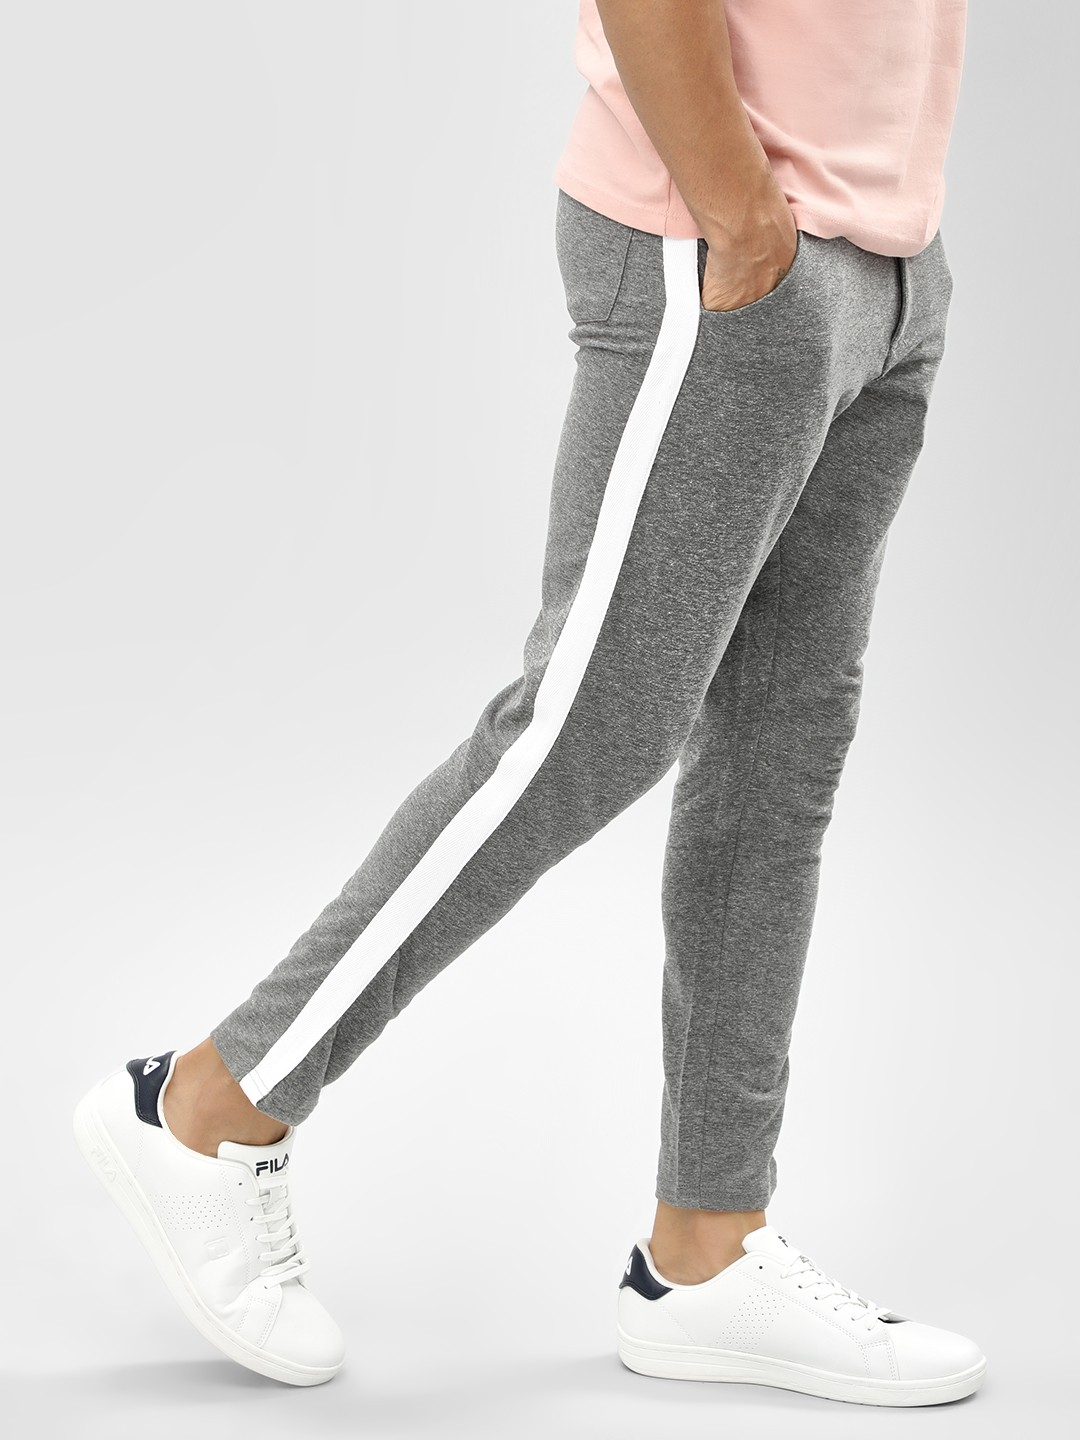 Garcon Charcoal Grey Contrast Side Tape Knitted Trousers 1